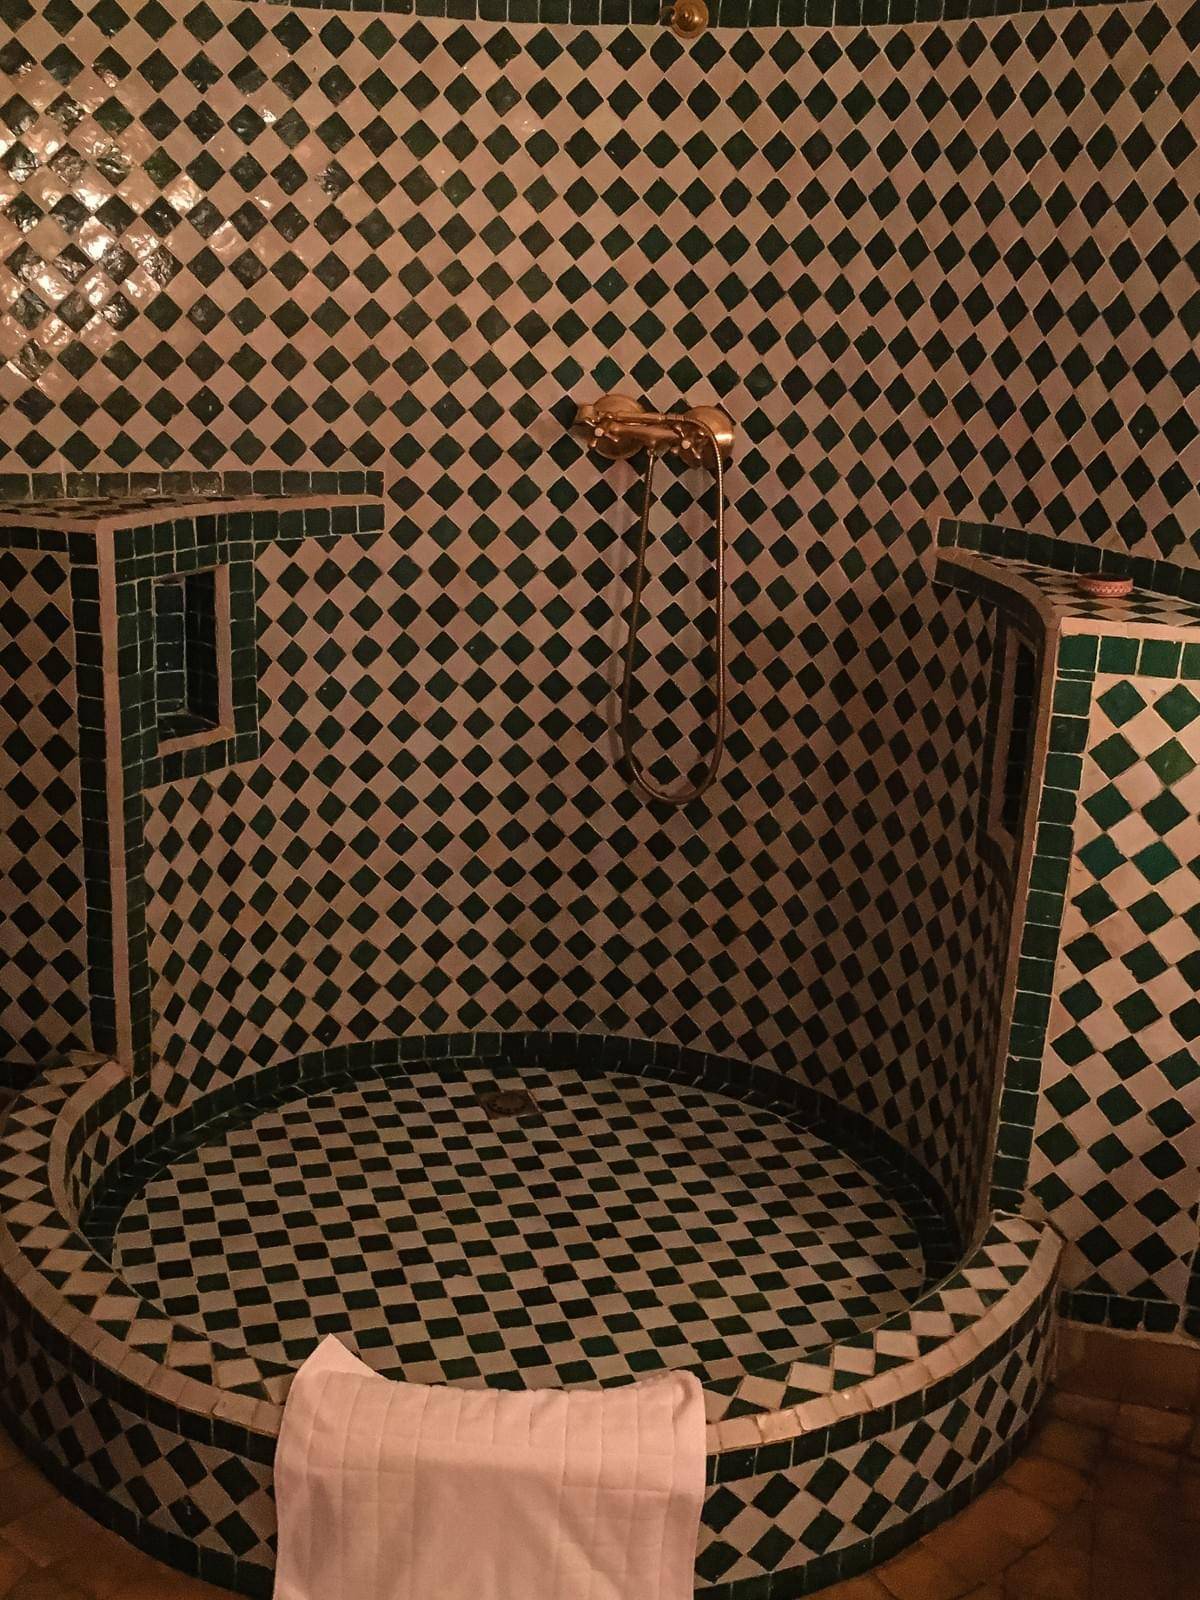 A green and white checkered tiled traditional moroccan bath with a gold faucet